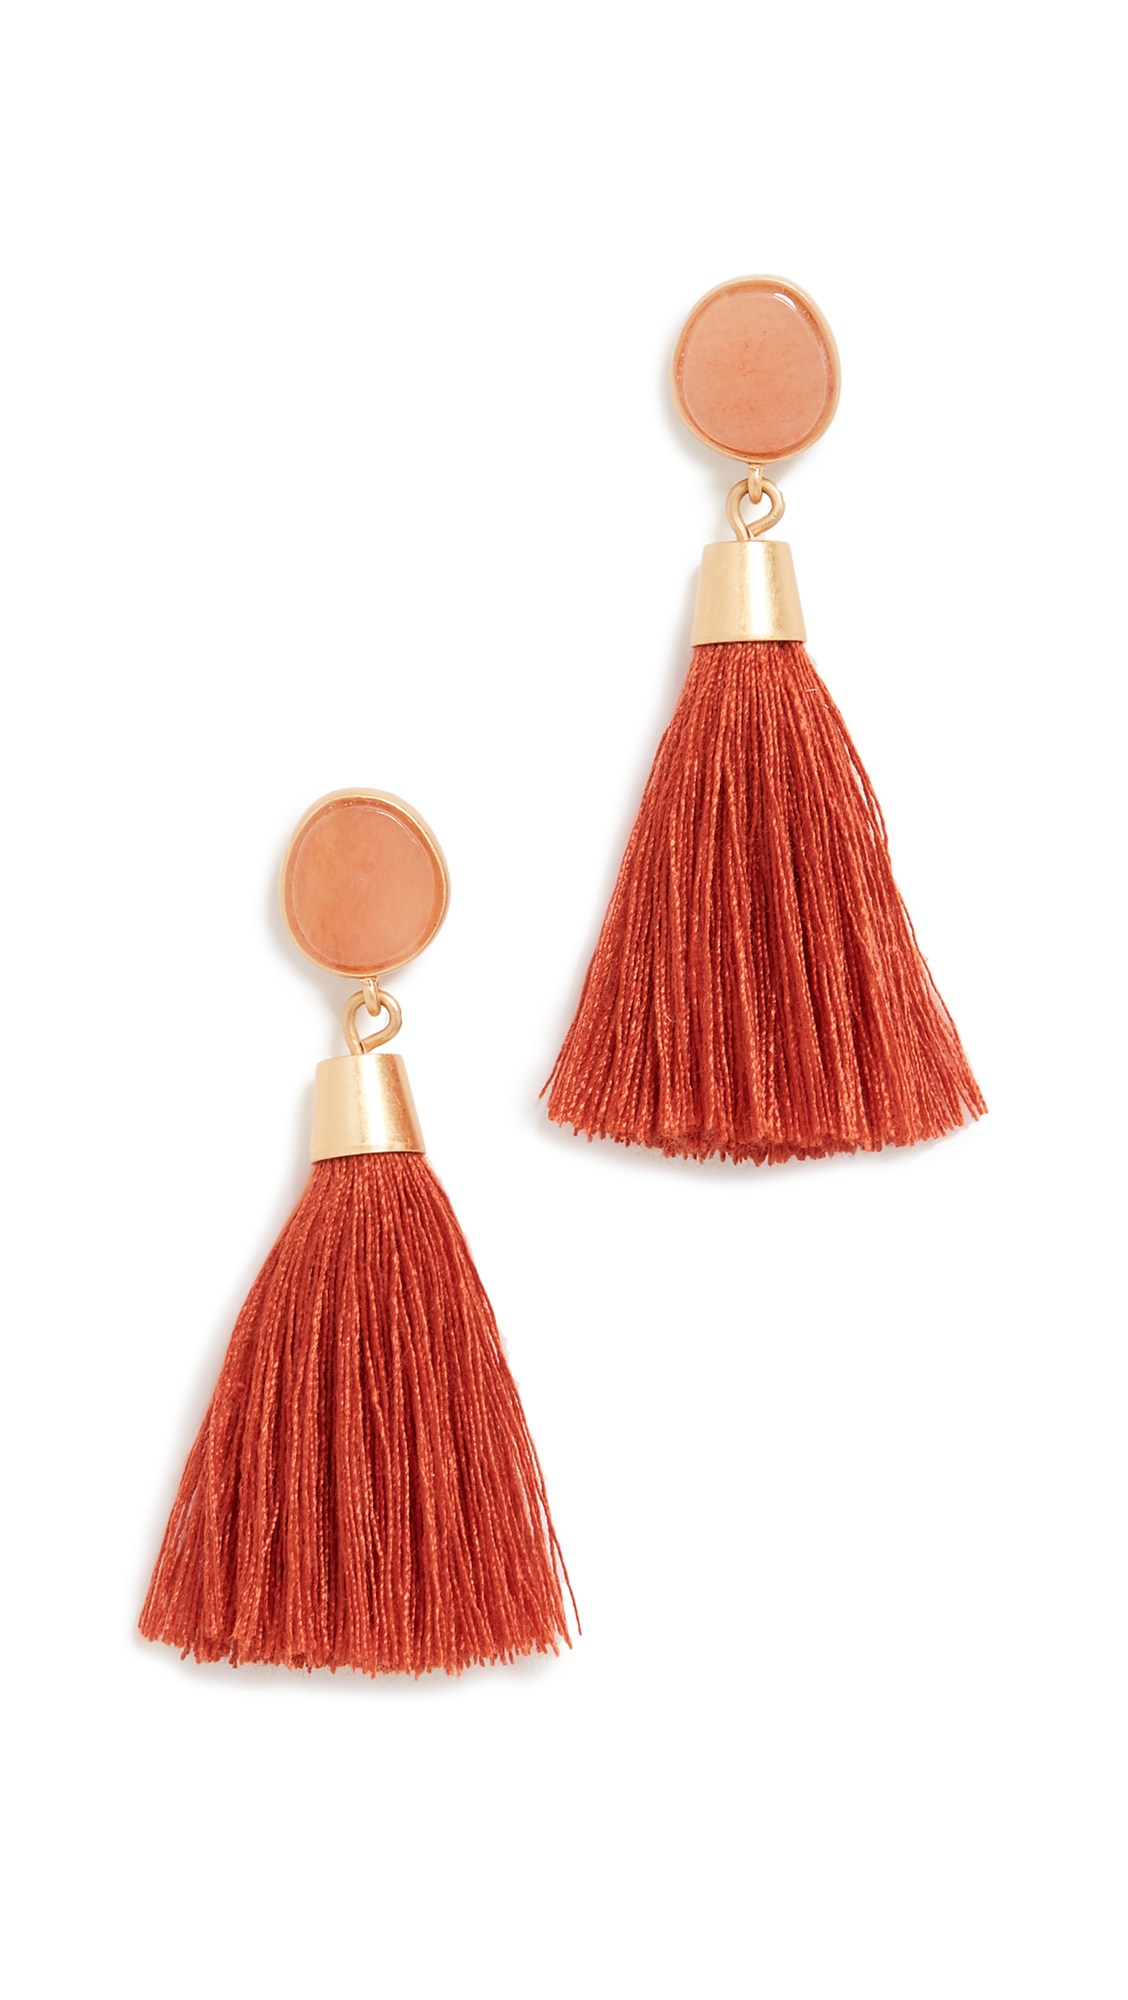 Madewell Stone & Tassel Earrings In Red